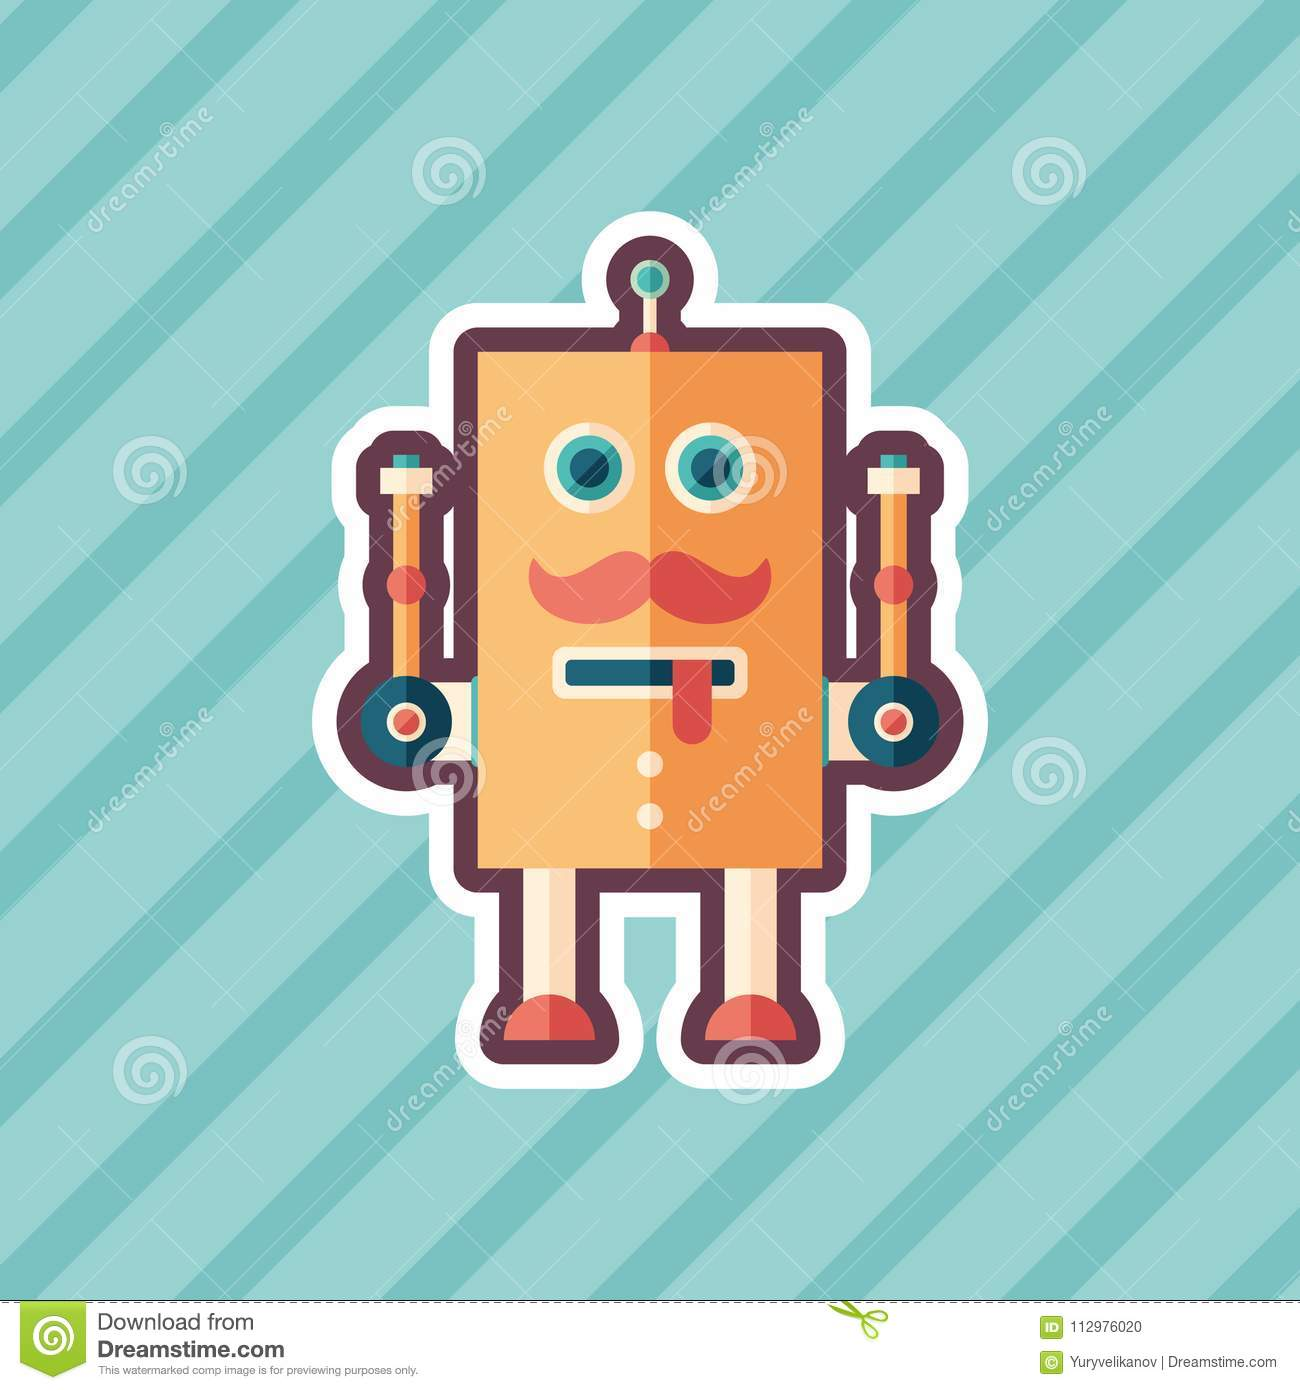 Funny robot sticker flat icon with color background.